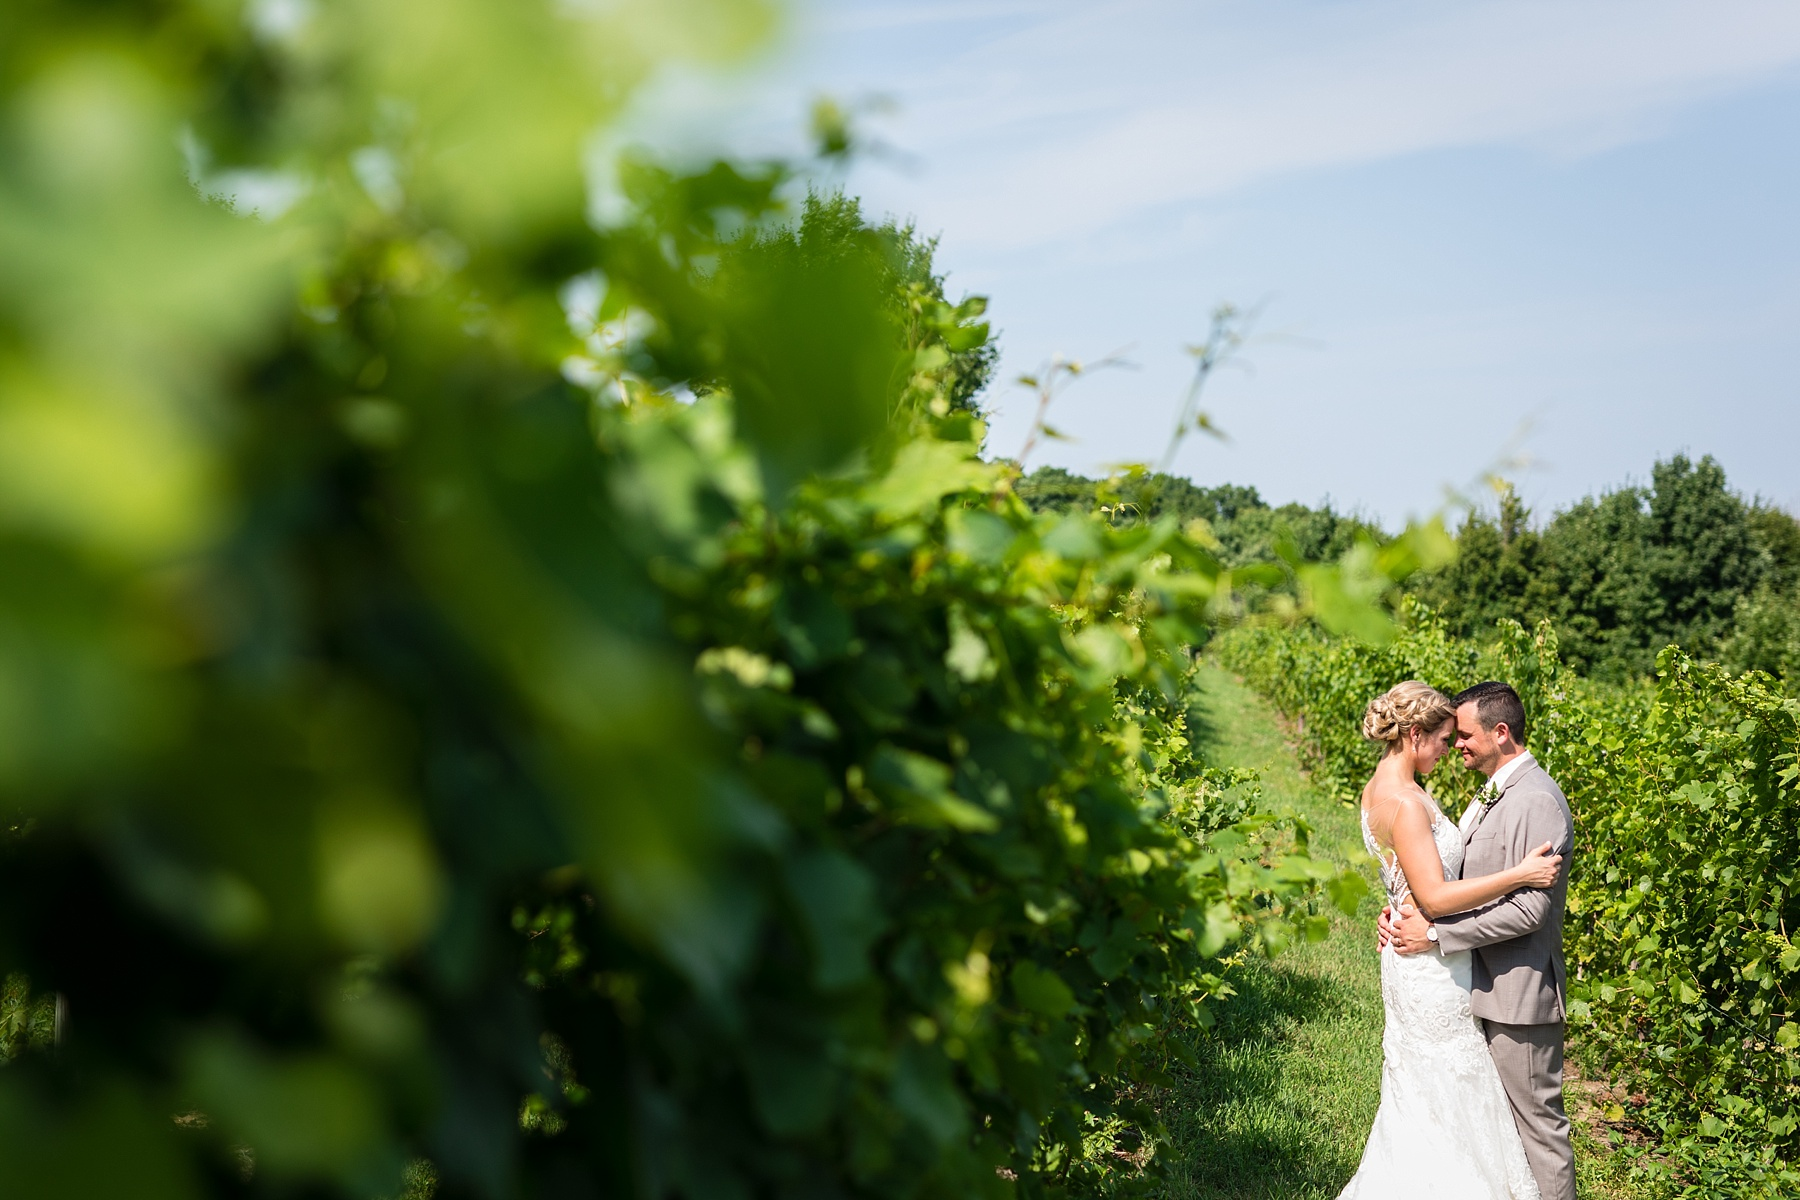 Brandon_Shafer_Photography_Lauren_Vasile_Ciccone_Vineyard_Suttons_Bay_Wedding_0039.jpg